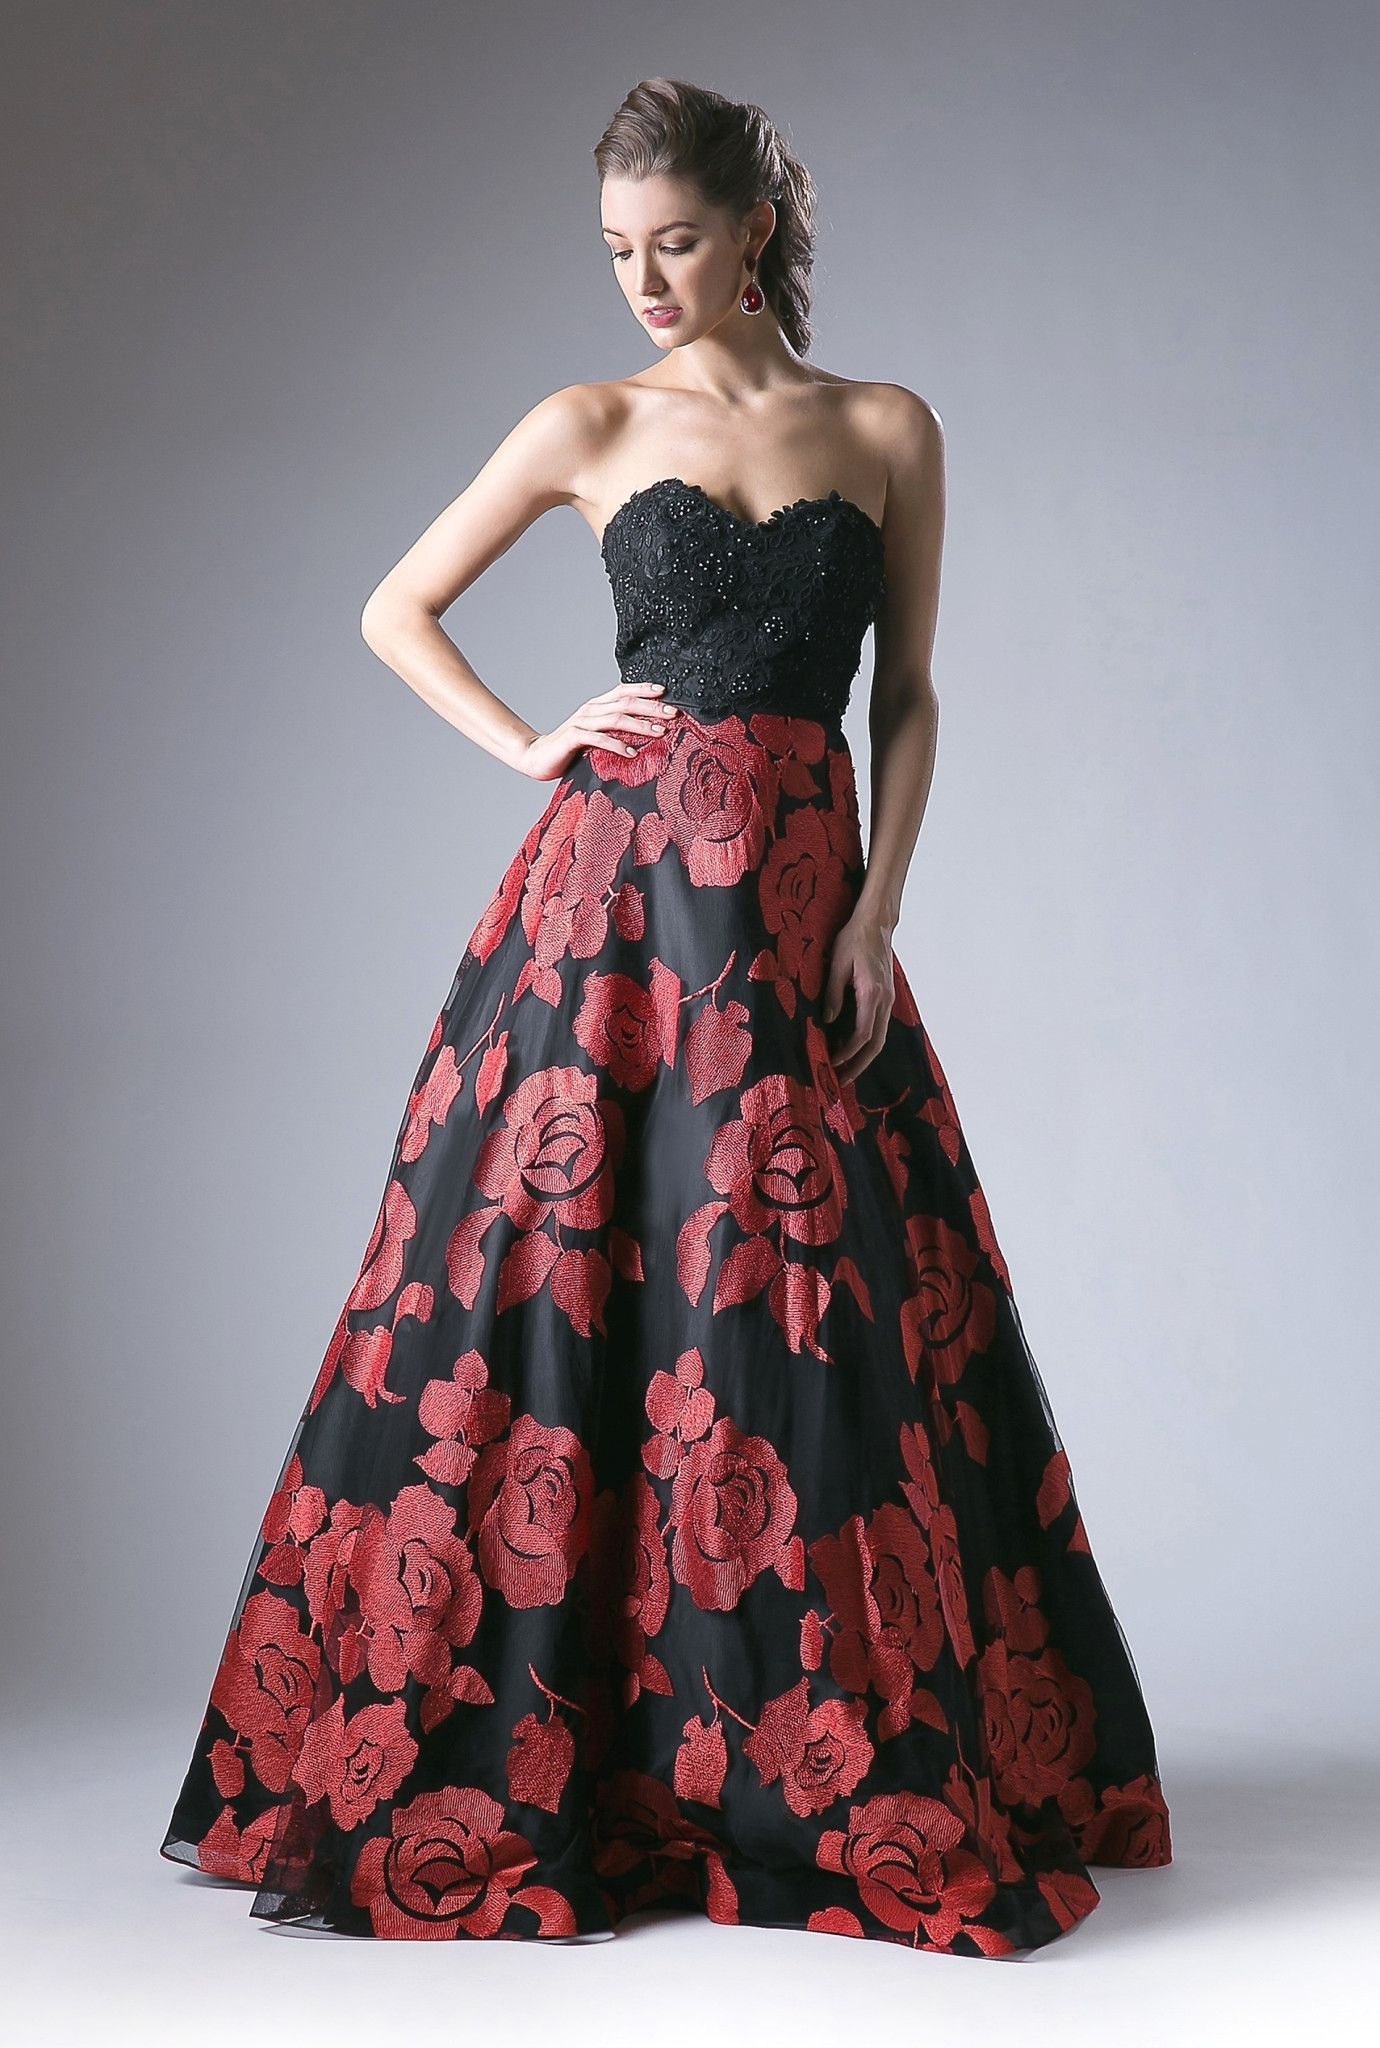 Long Strapless Black and Red Floral Print Dress by Cinderella Divine